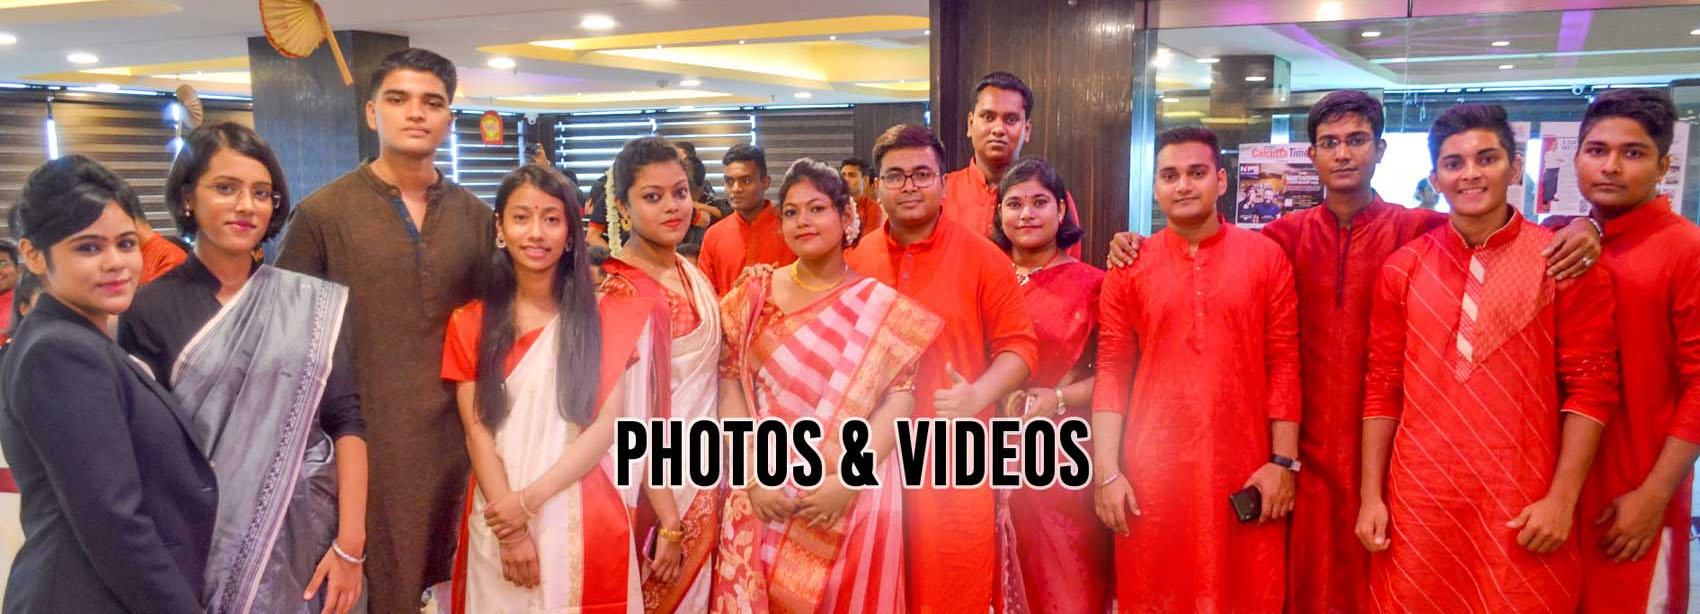 NIPS Hotel Management college image & video gallery